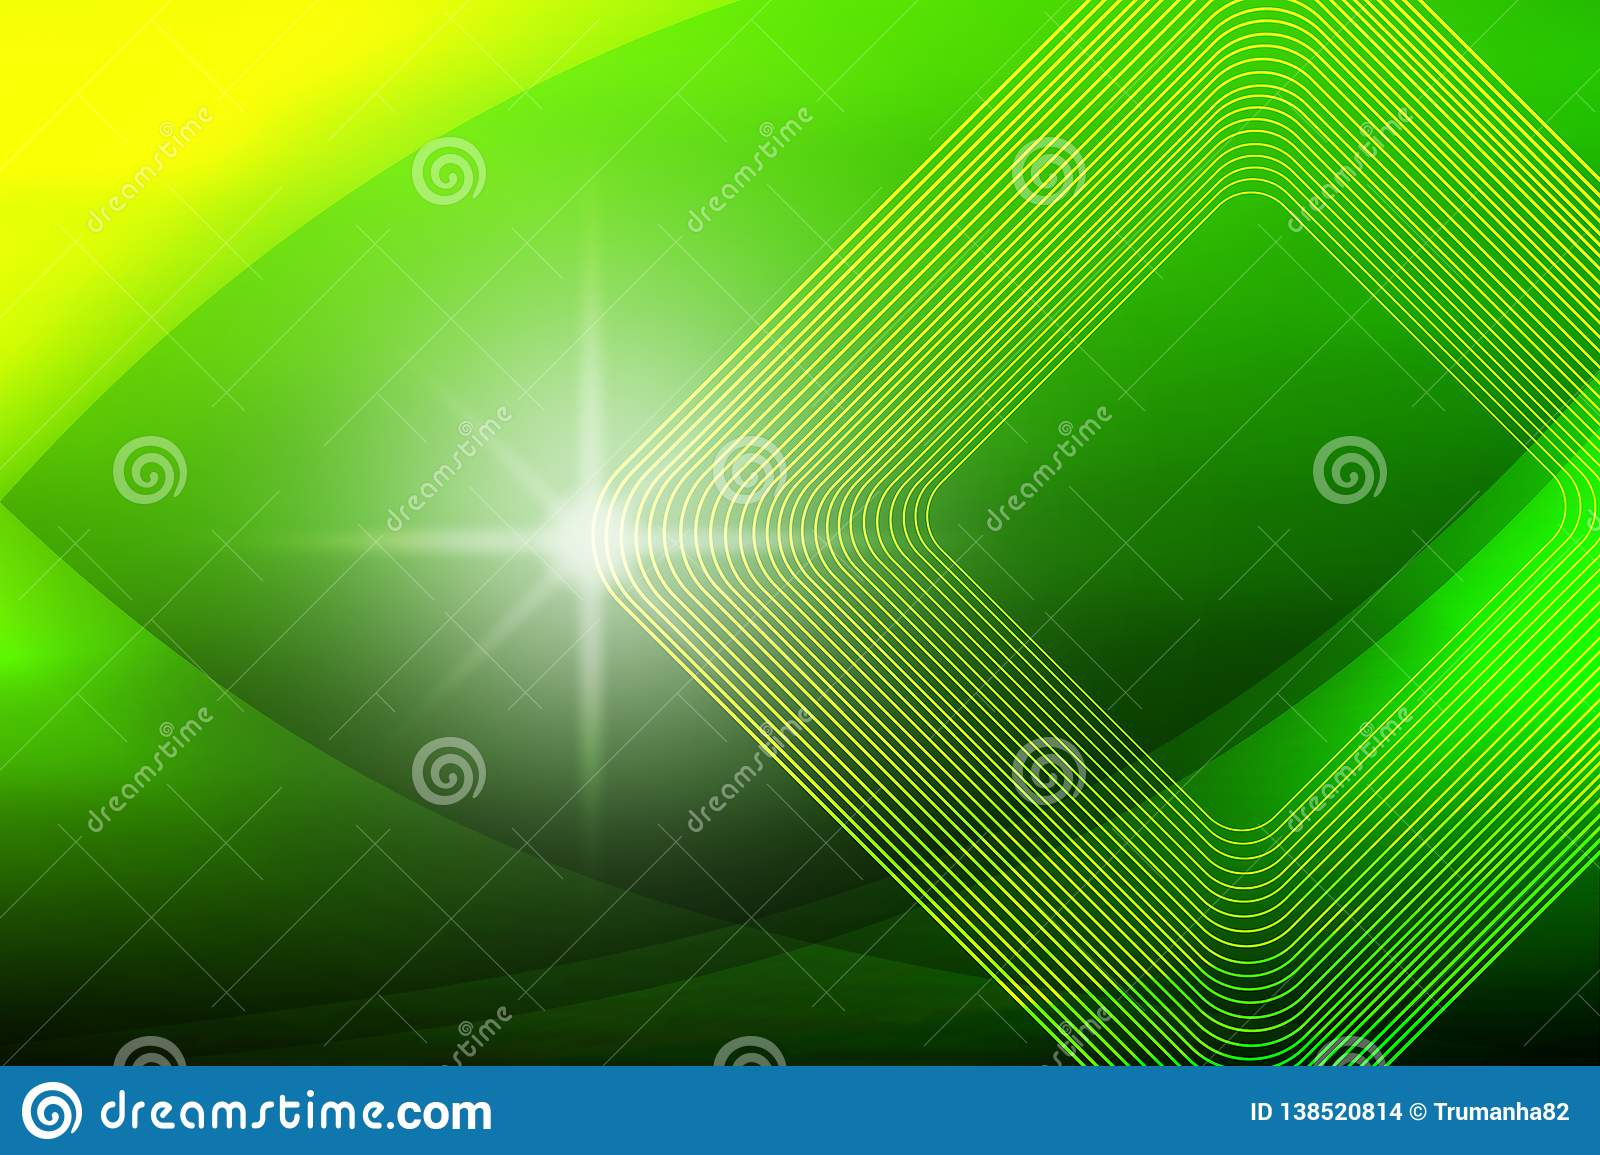 Shiny Sparkle, Square Shapes and Curves in Blurred Green and Yellow Background